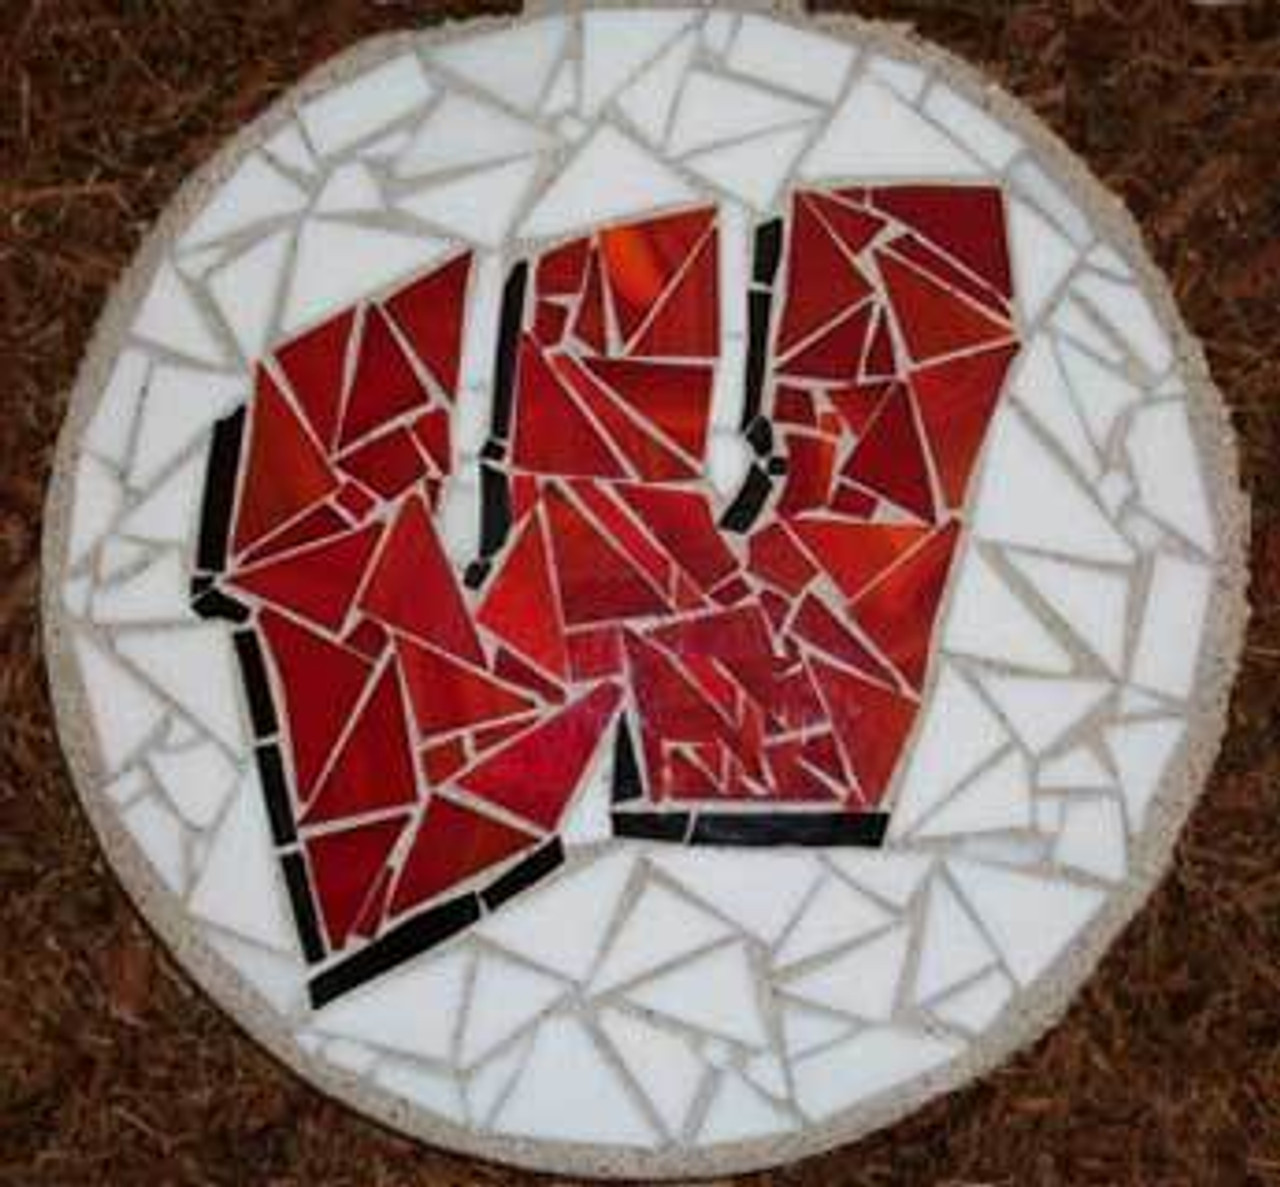 Motion W Stained Glass Stepping Stone by Soozii's QTZ is available on WisconsinMade Artisan Collective